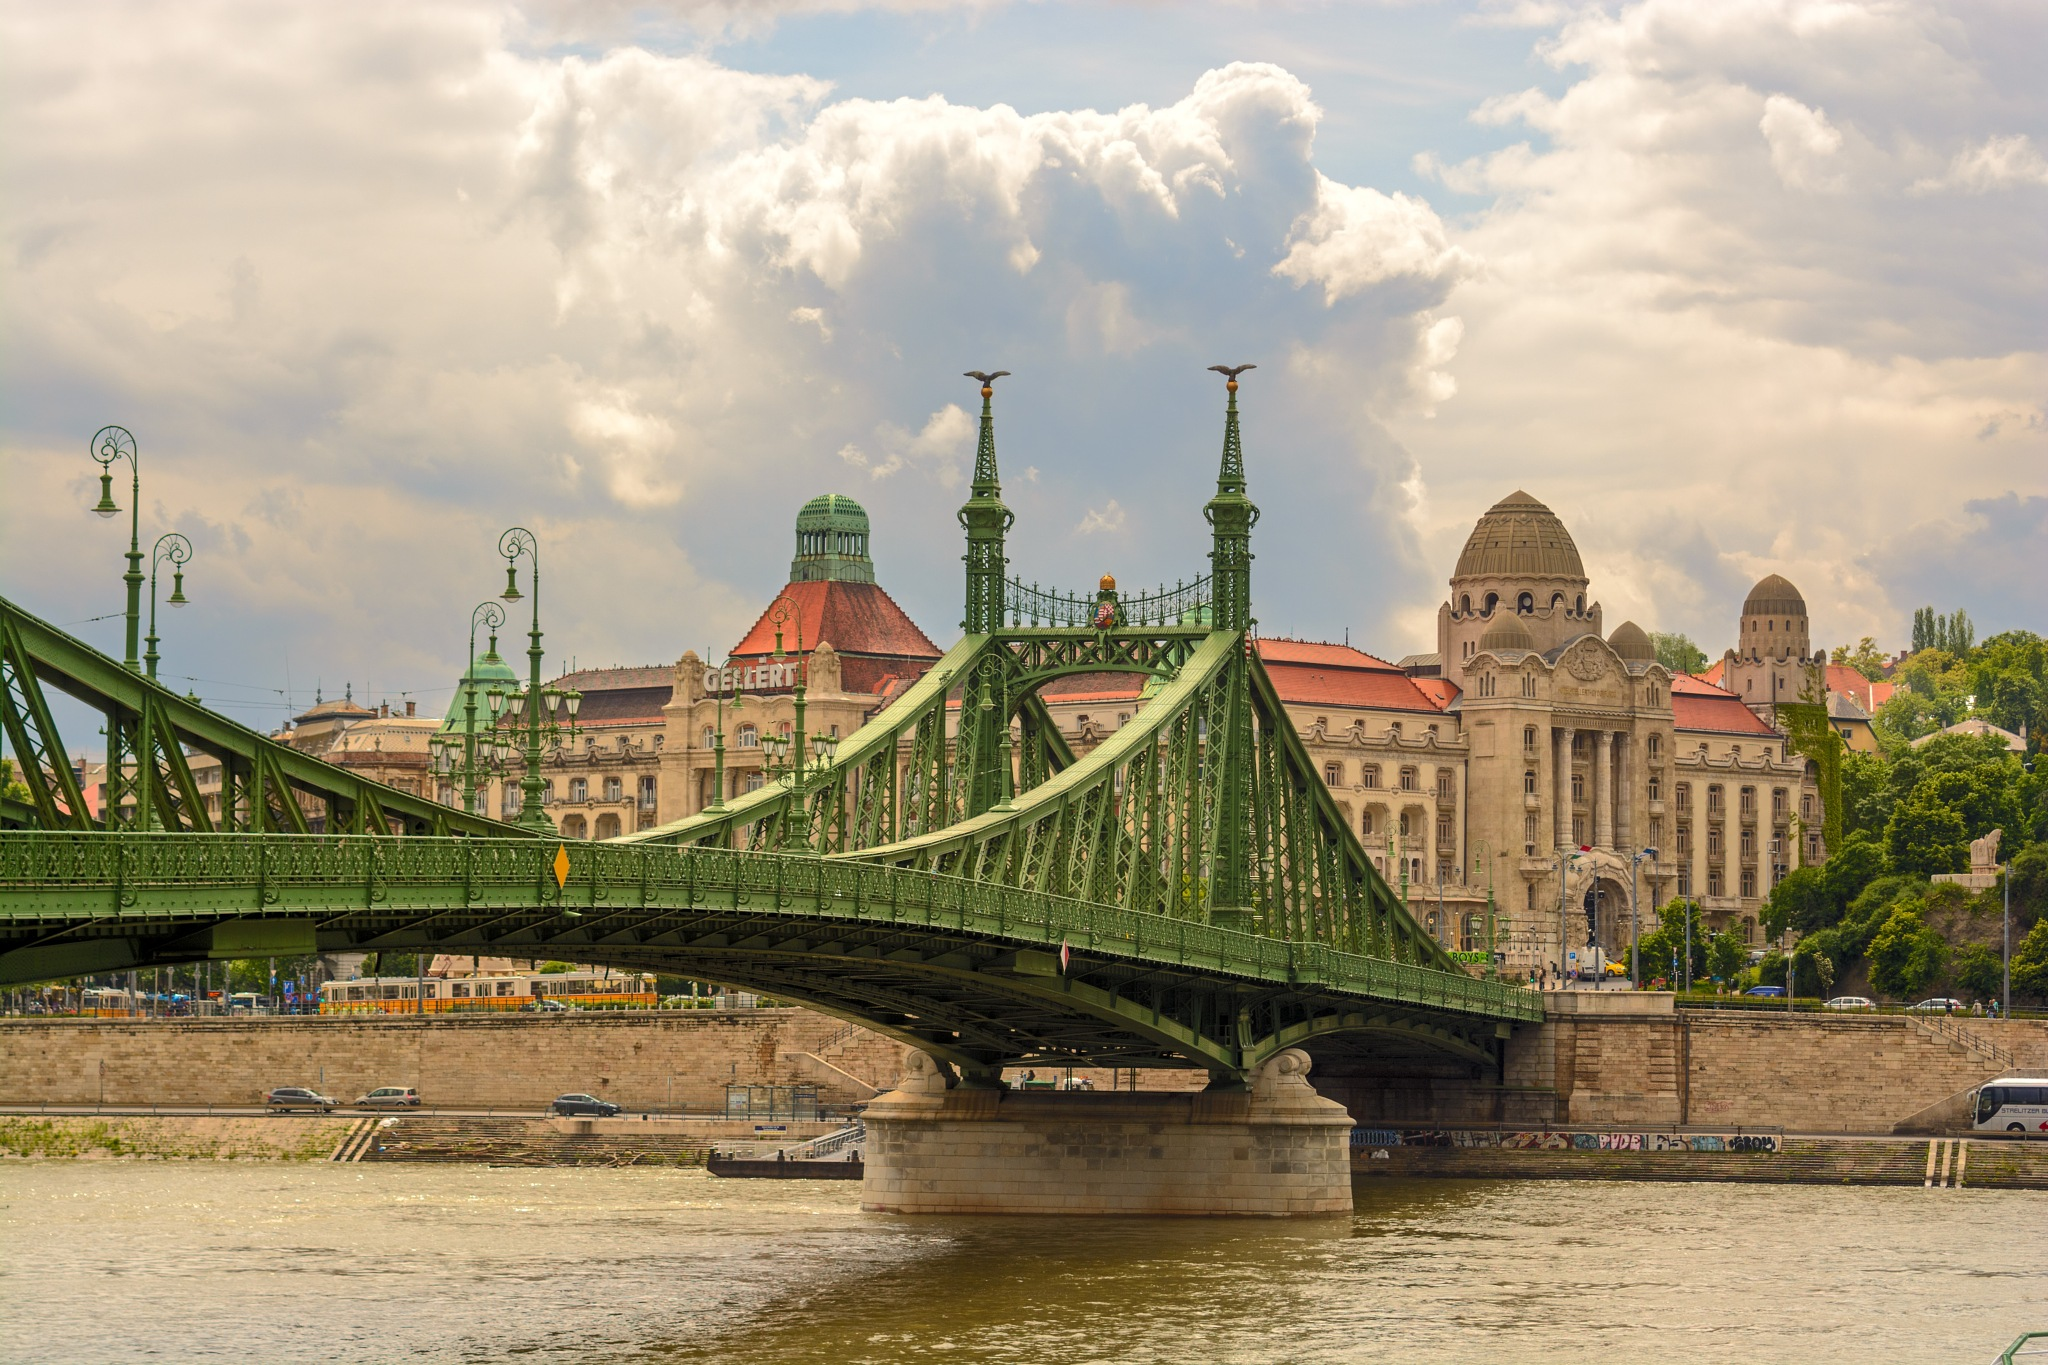 Summer view of Liberty bridge and Gellert bath building by Yury Kirillov